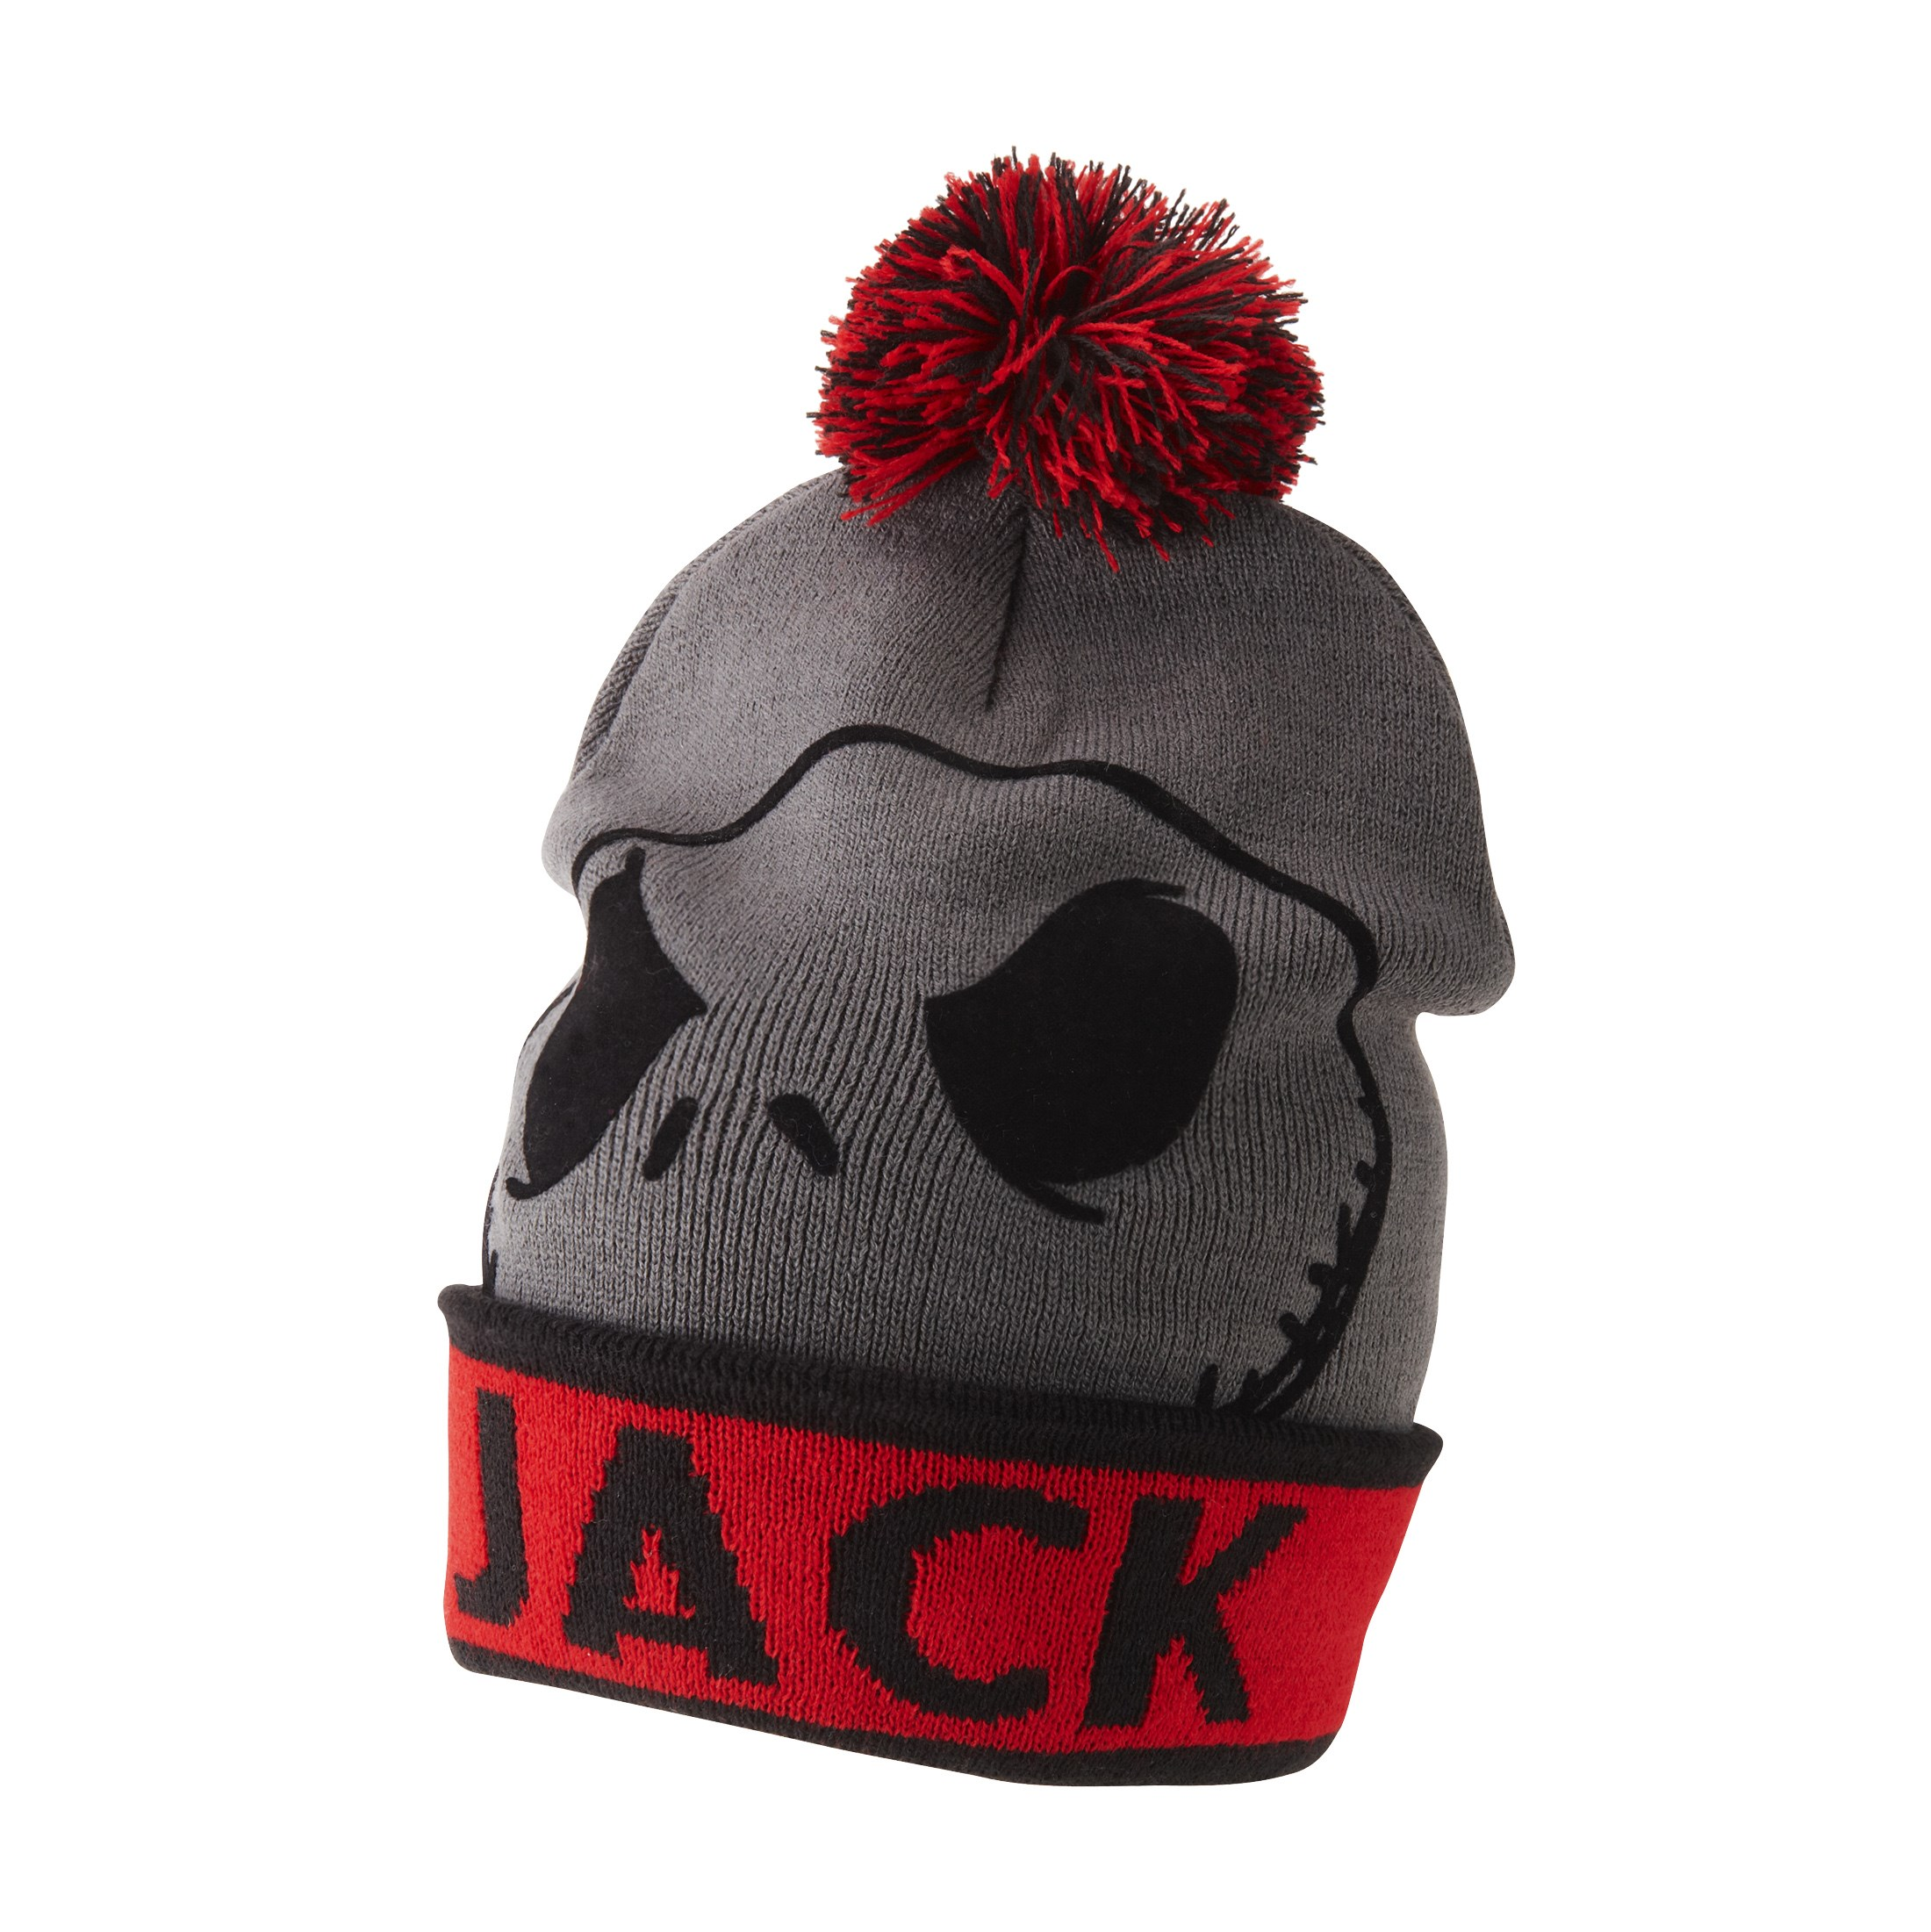 The Nightmare Before Christmas Jack Skellington Knit Hat with Pom